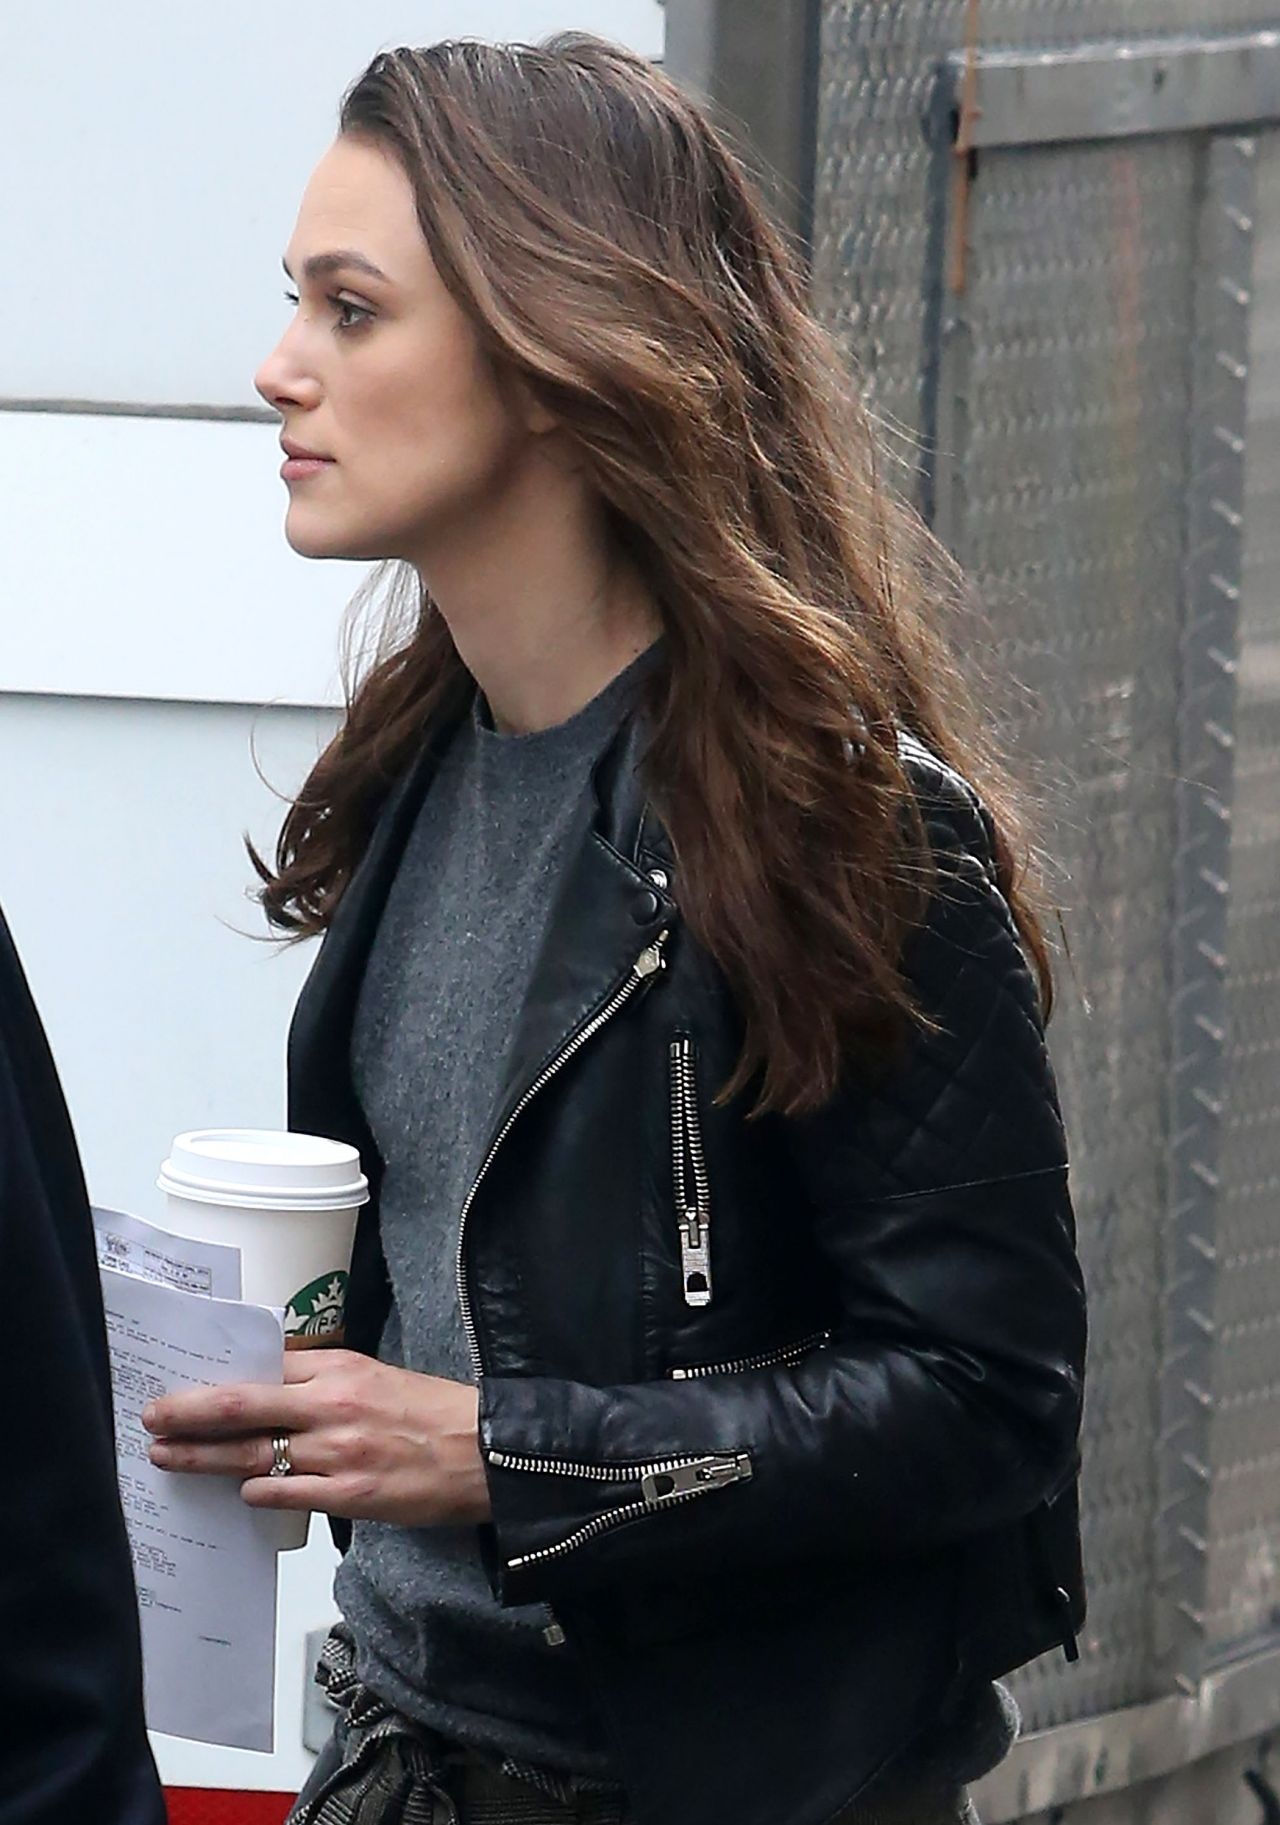 Keira Knightley On The Set Of Collateral Beauty In New